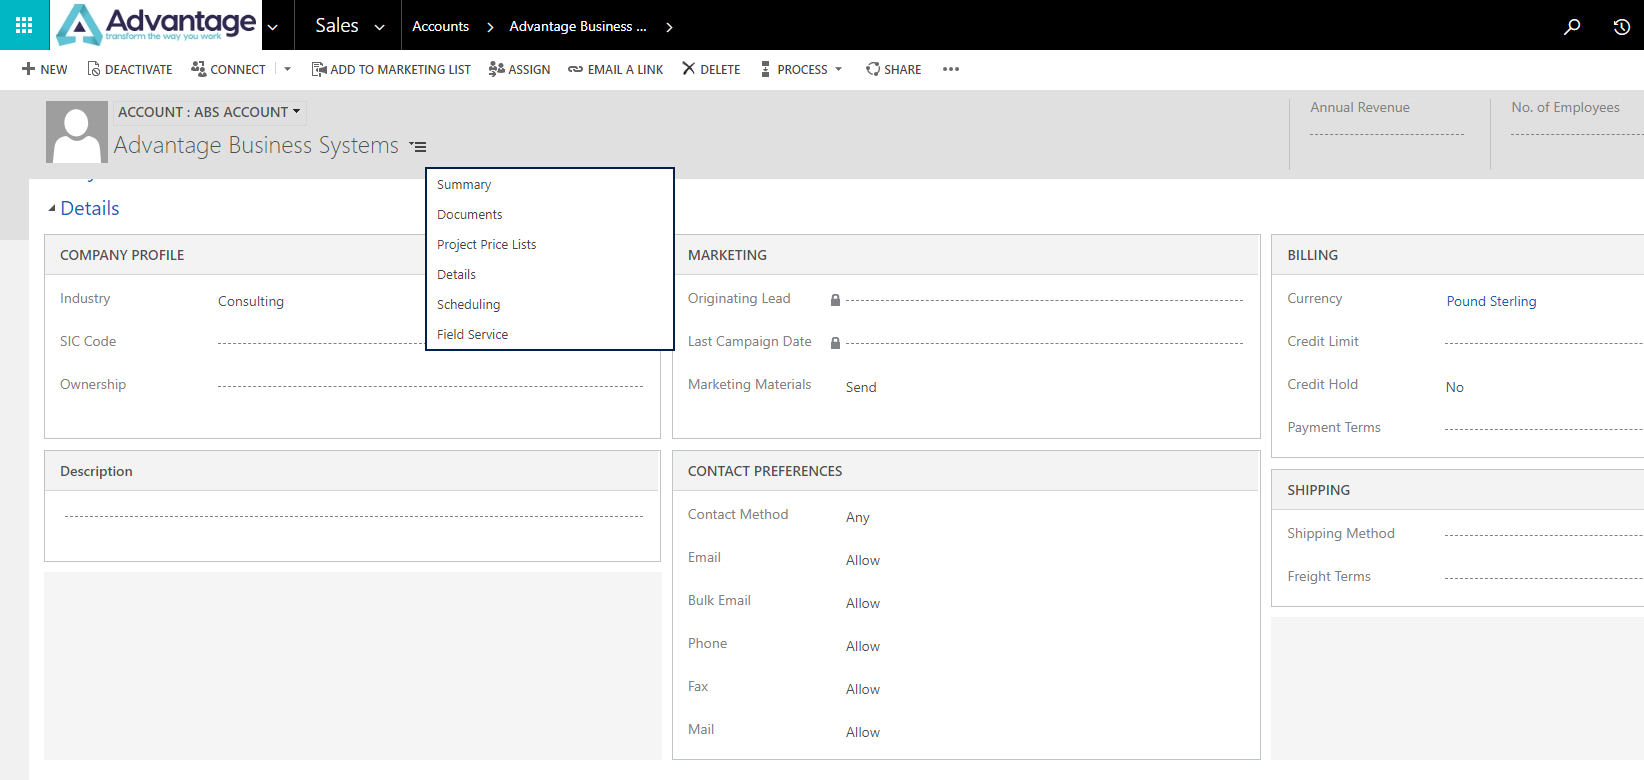 Tabs vs Sections in Dynamics 365